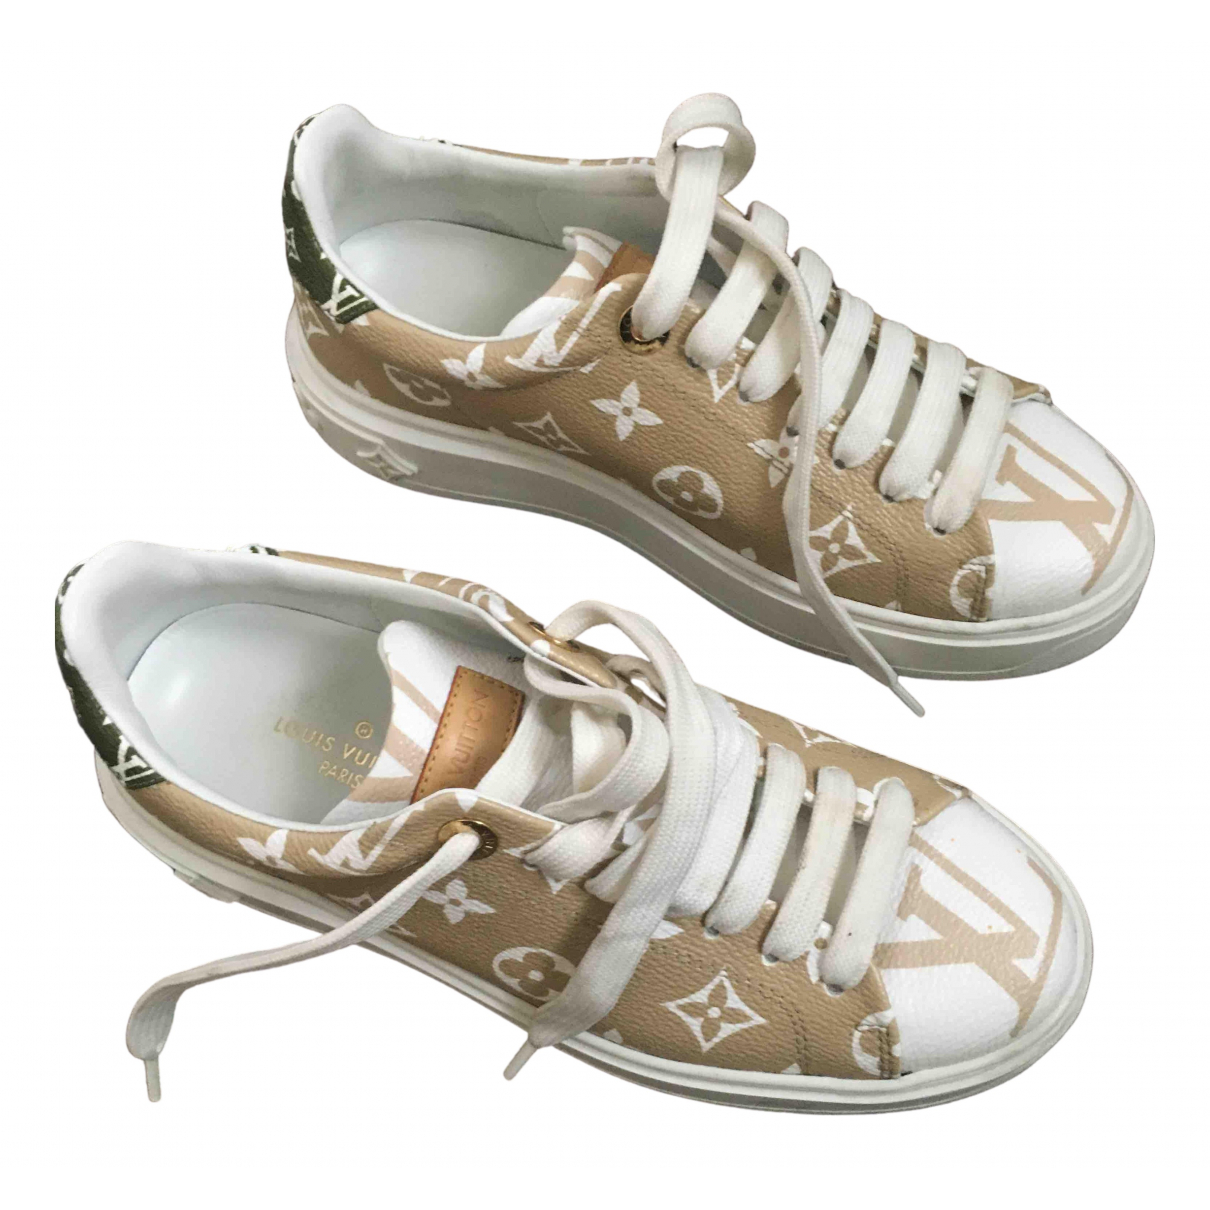 Louis Vuitton TimeOut Green Leather Trainers for Women 36 EU